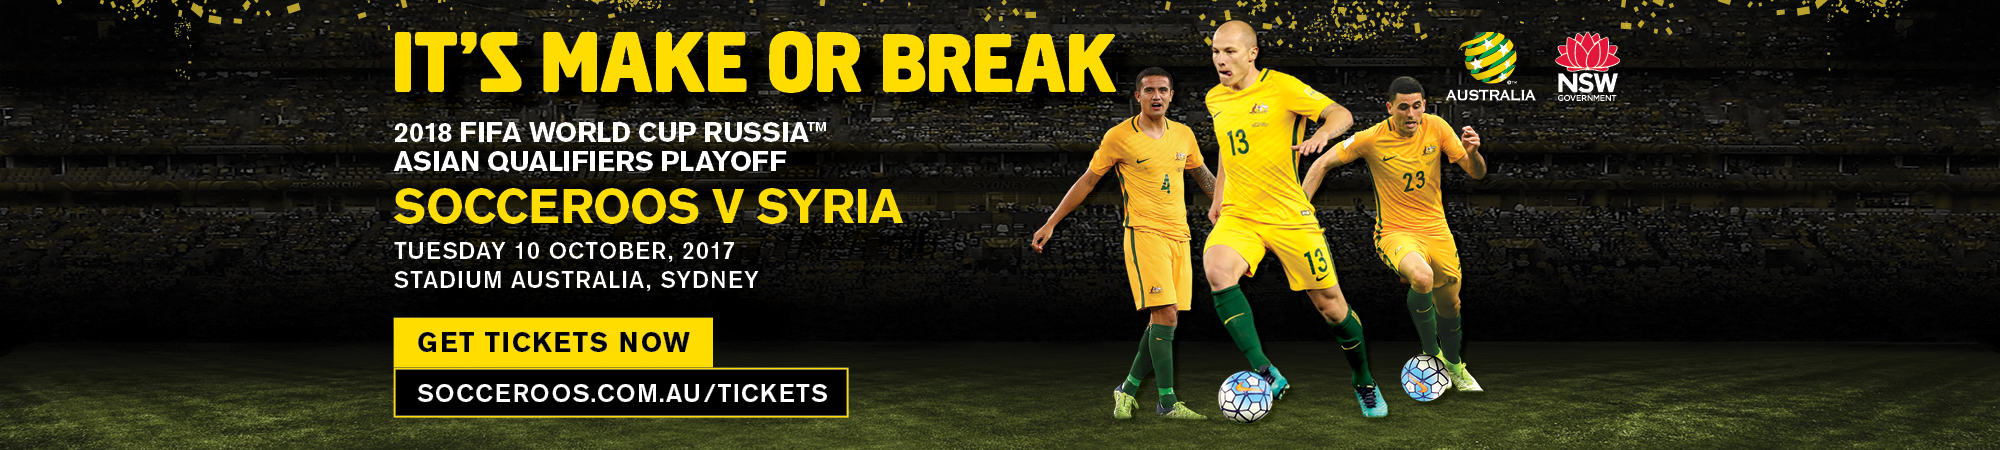 Its make or break. Socceroos V Syria. Get tickets now